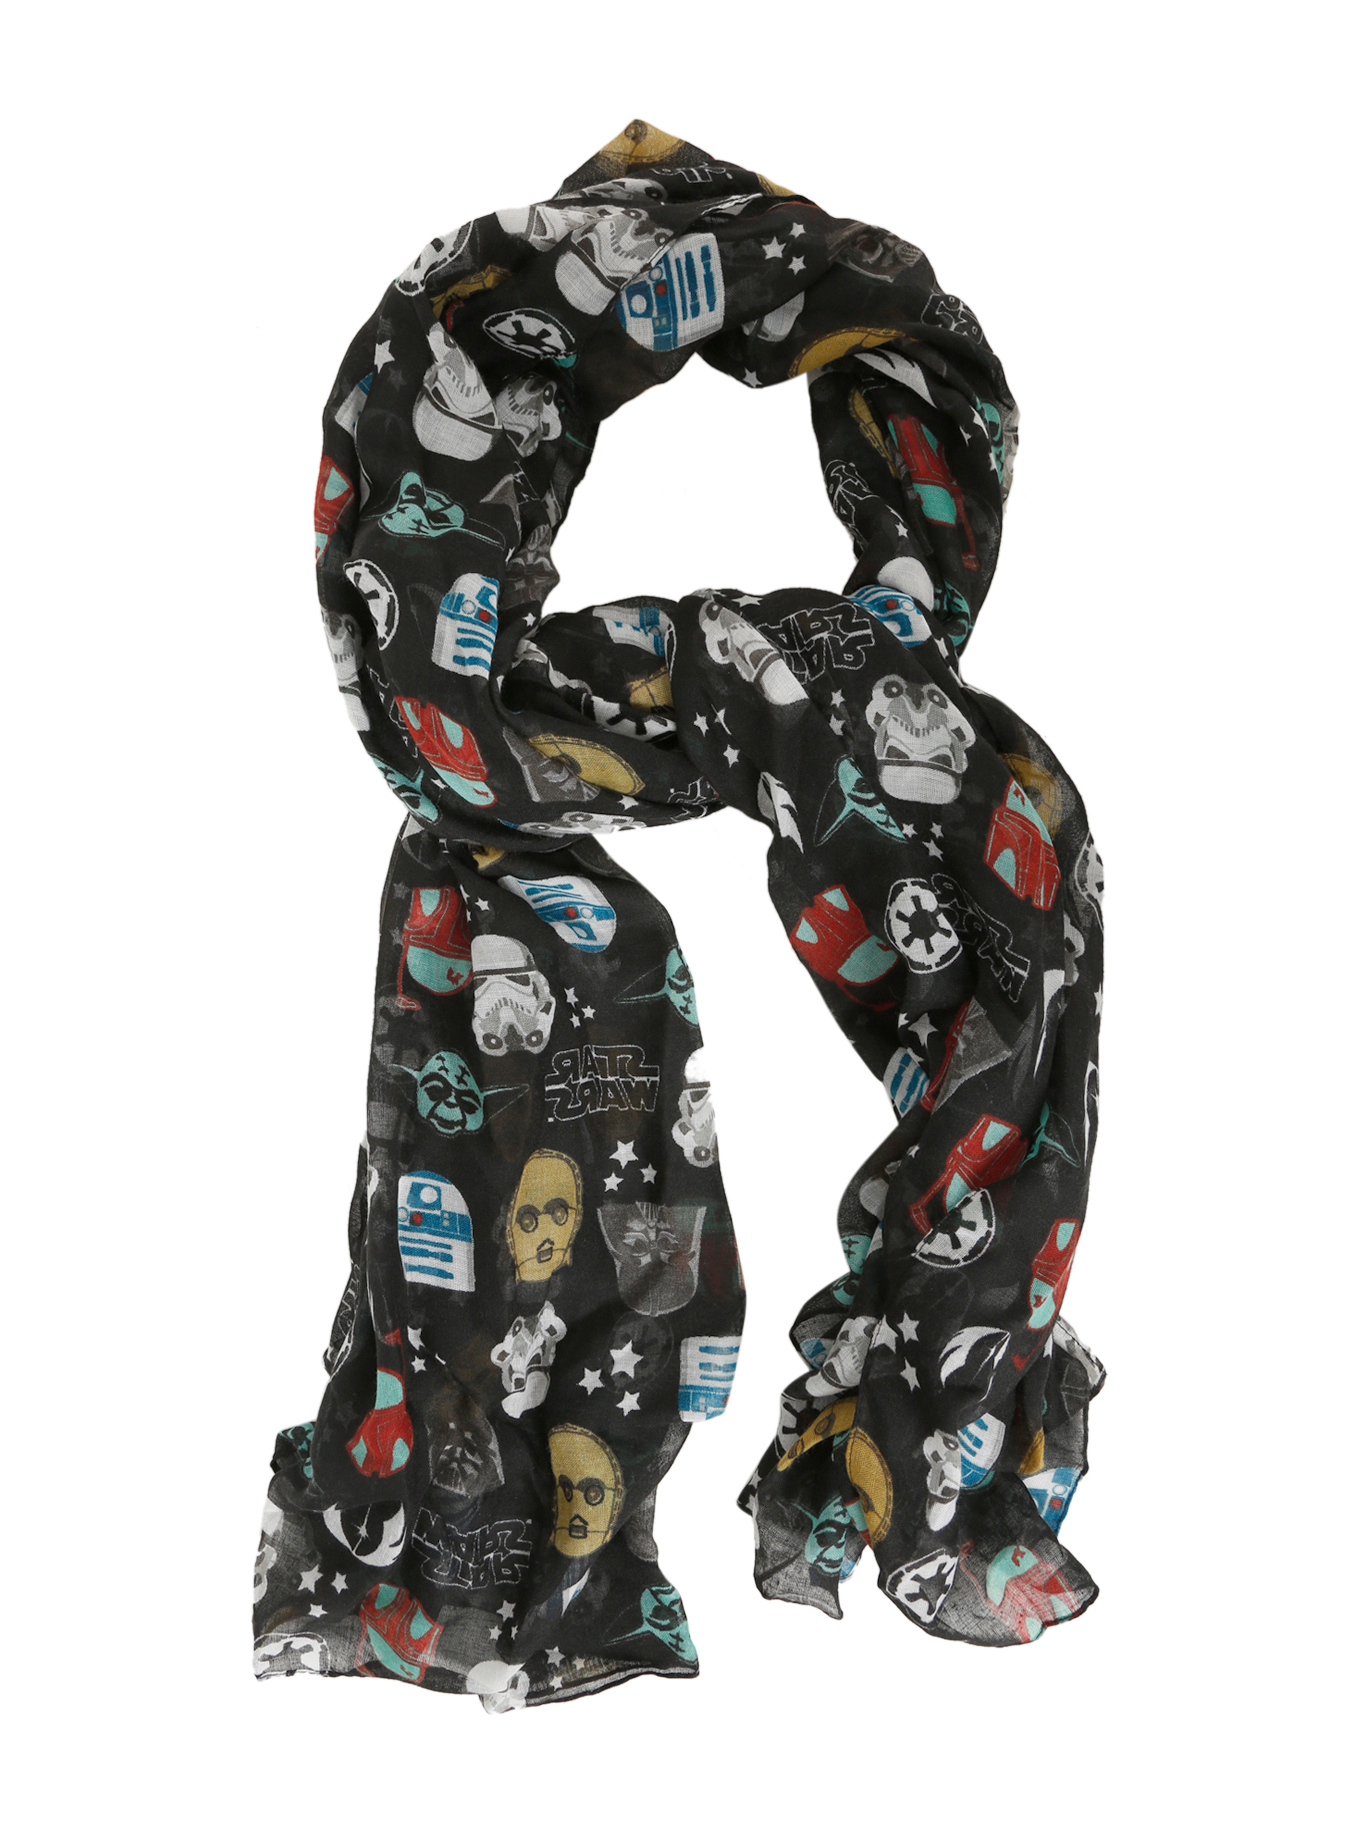 New Loungefly Scarf At Hot Topic The Kessel Runway